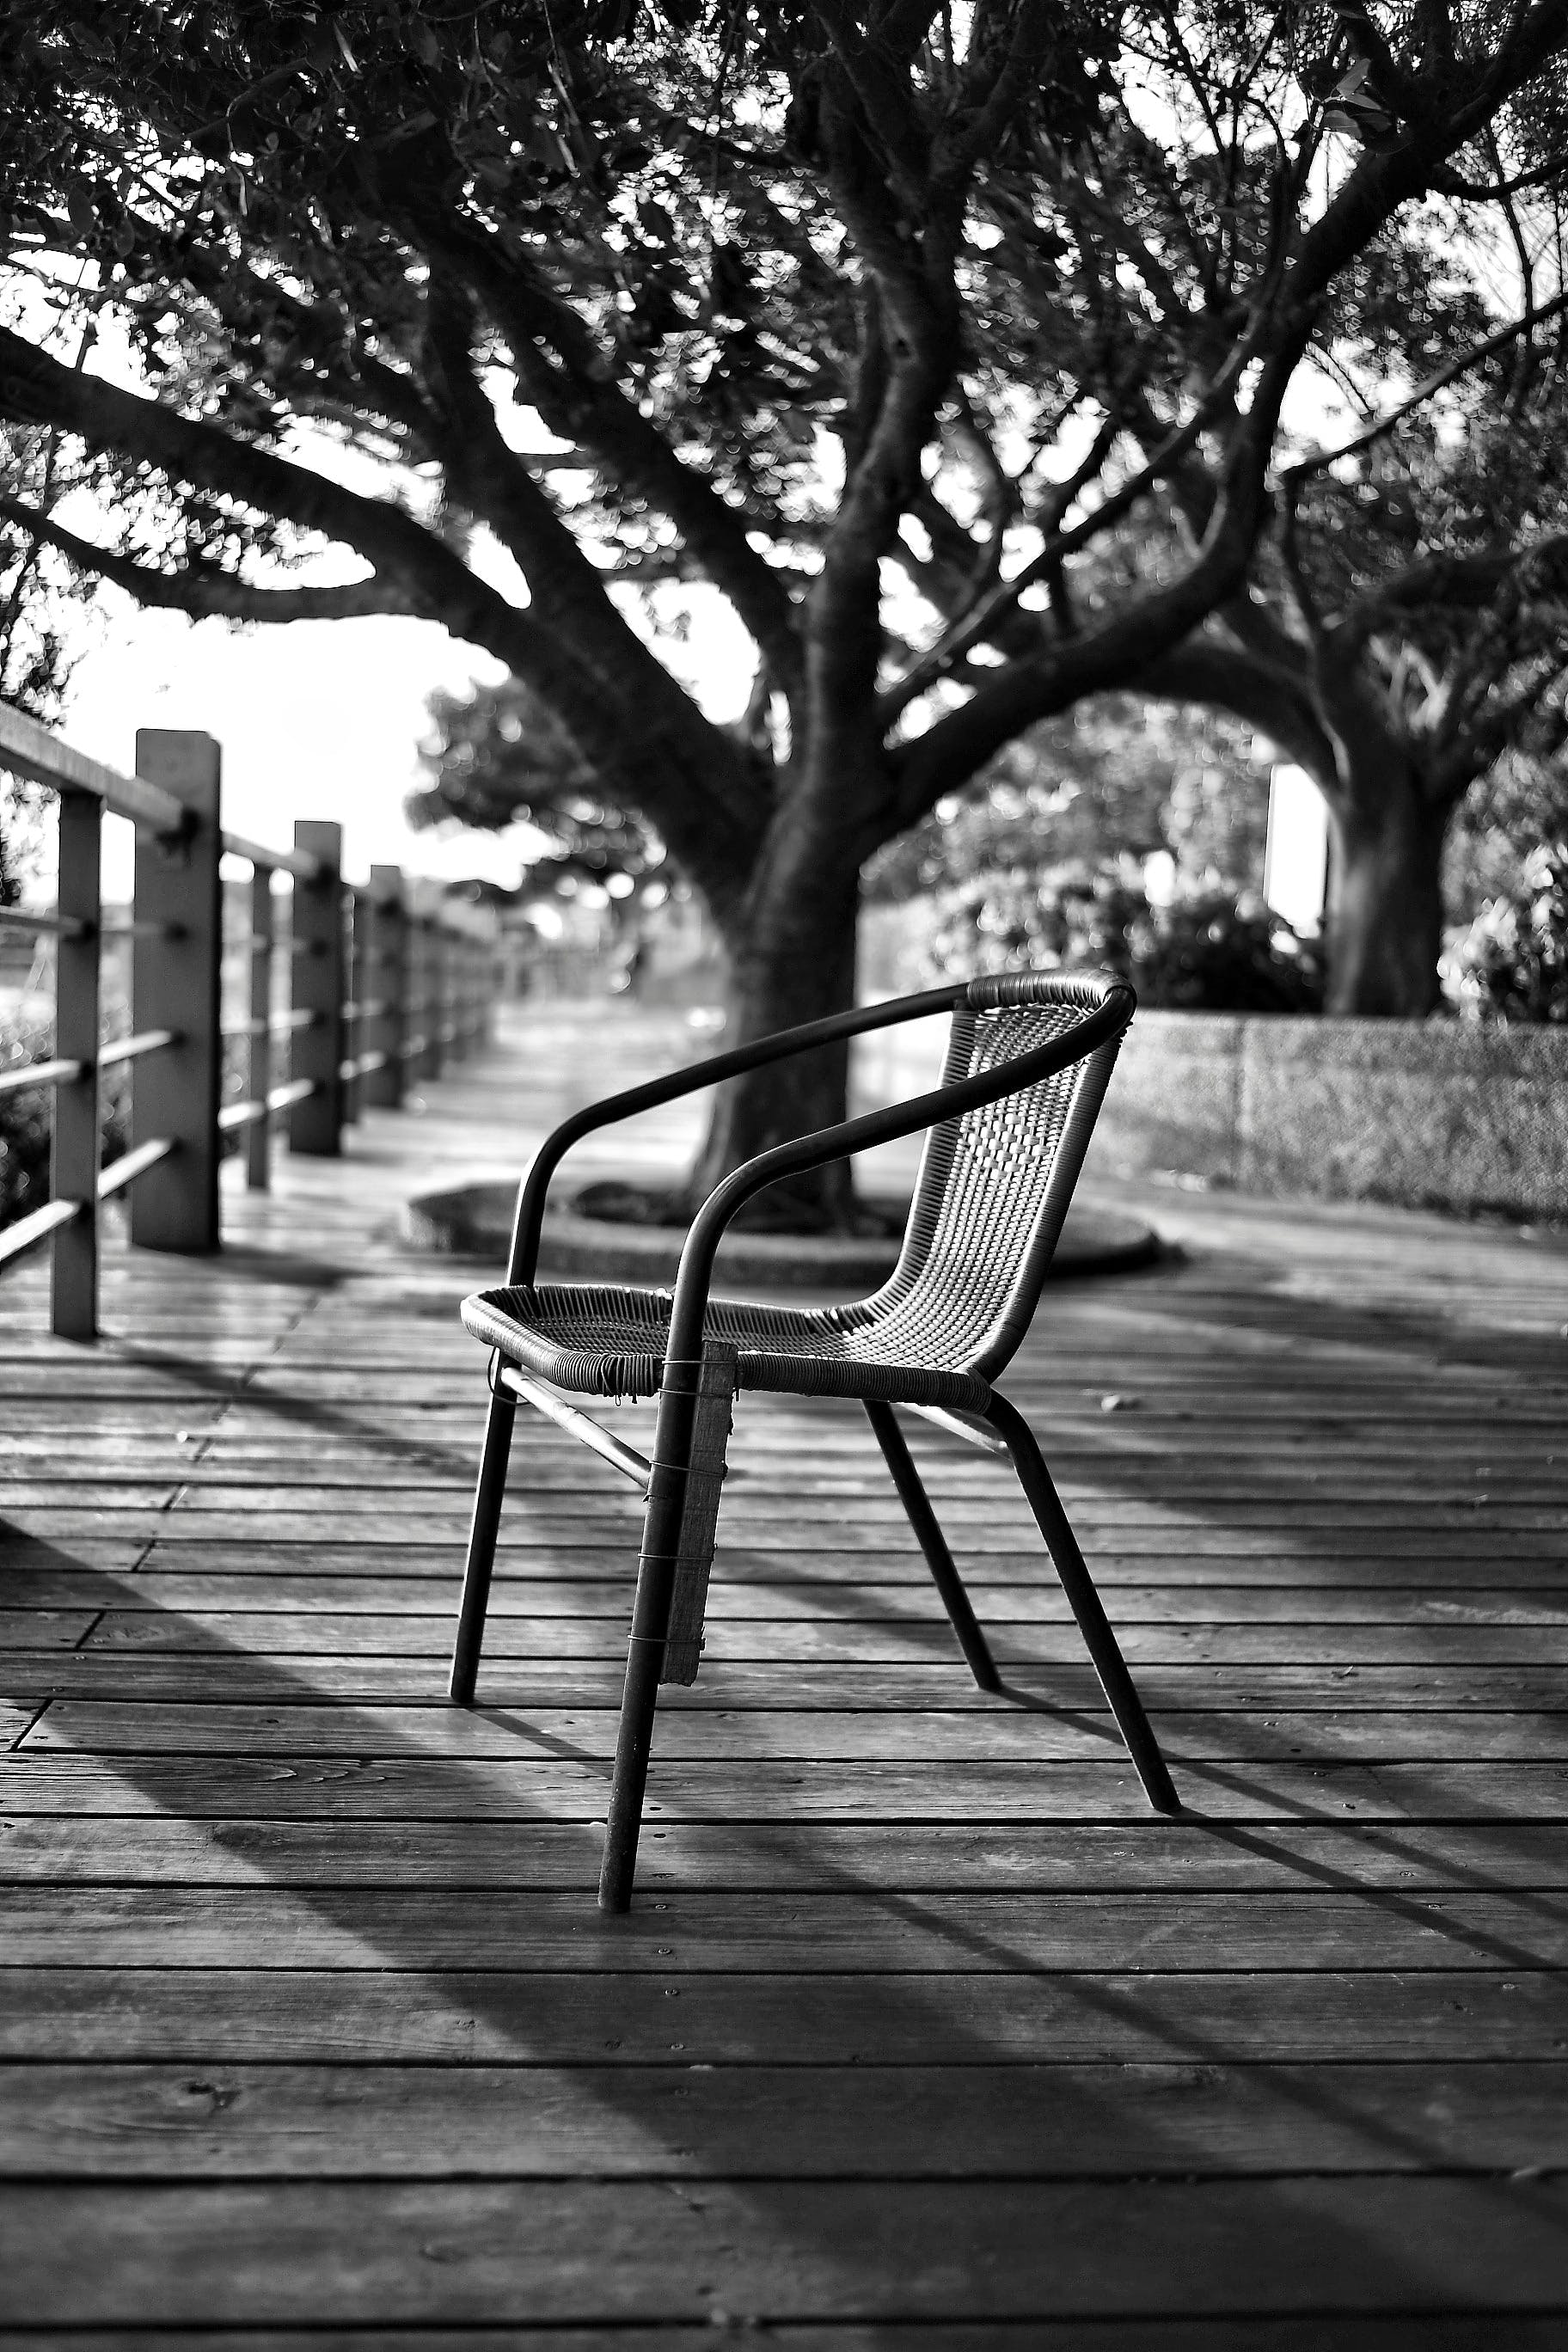 Grey-scale Photo of Chair